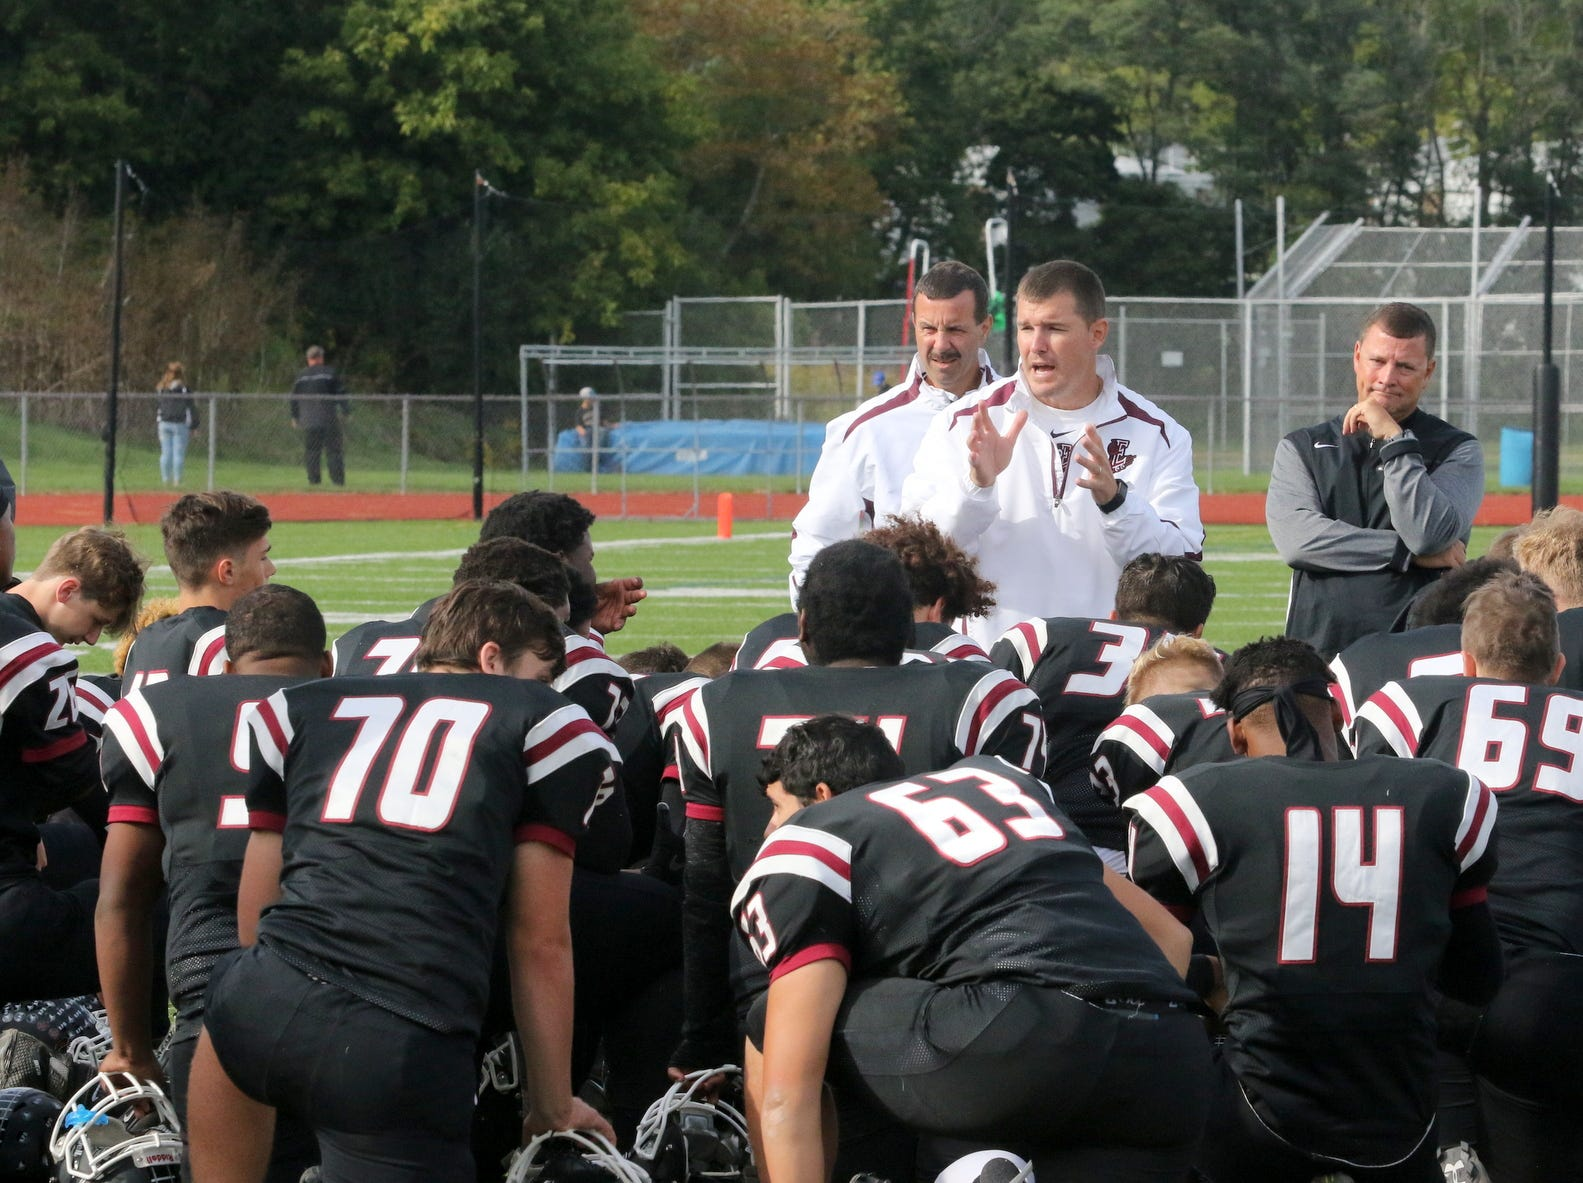 Elmira head coach Jimmy McCauley talks to his players after a 30-8 victory over Syracuse Corcoran on Sept. 22, 2018 at Ernie Davis Academy.